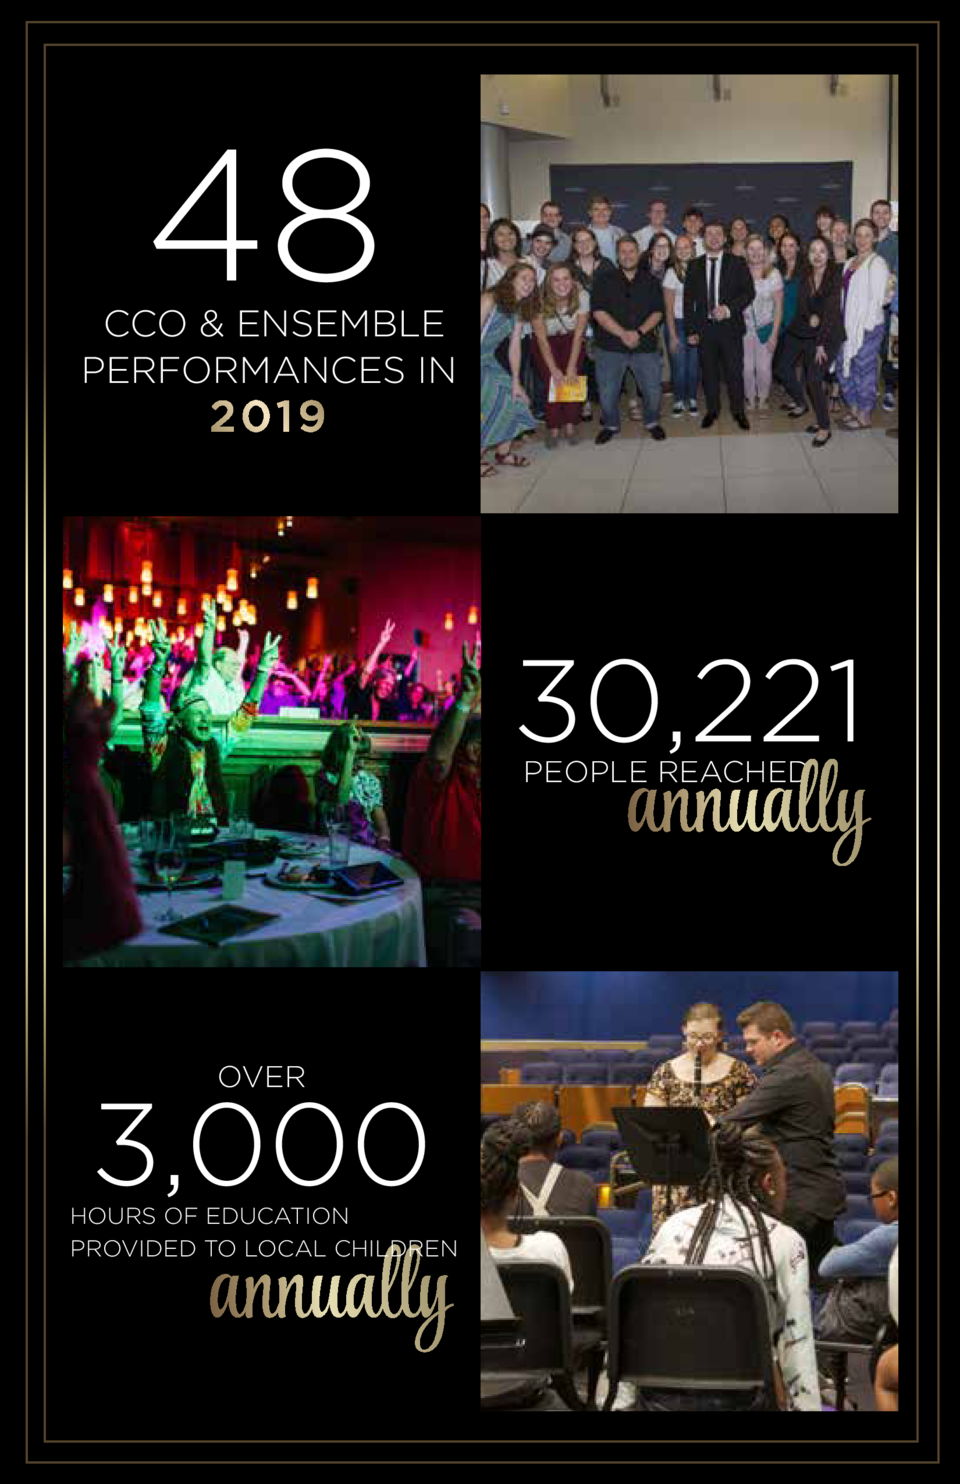 48  CCO   ENSEMBLE PERFORMANCES IN  30,221 PEOPLE REACHED  OVER  3,000  HOURS OF EDUCATION PROVIDED TO LOCAL CHILDREN